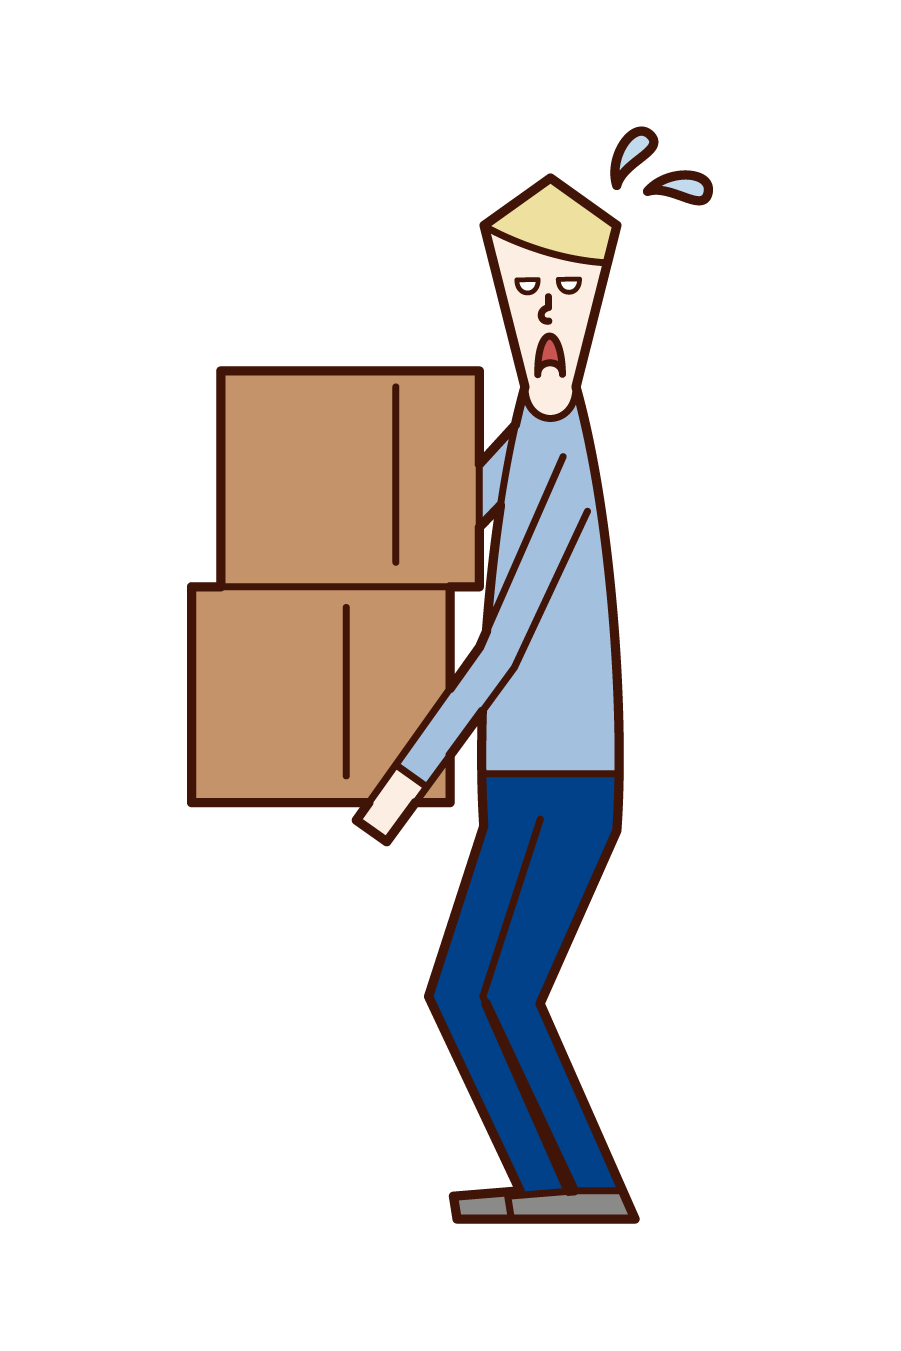 Illustration of a man carrying heavy baggage